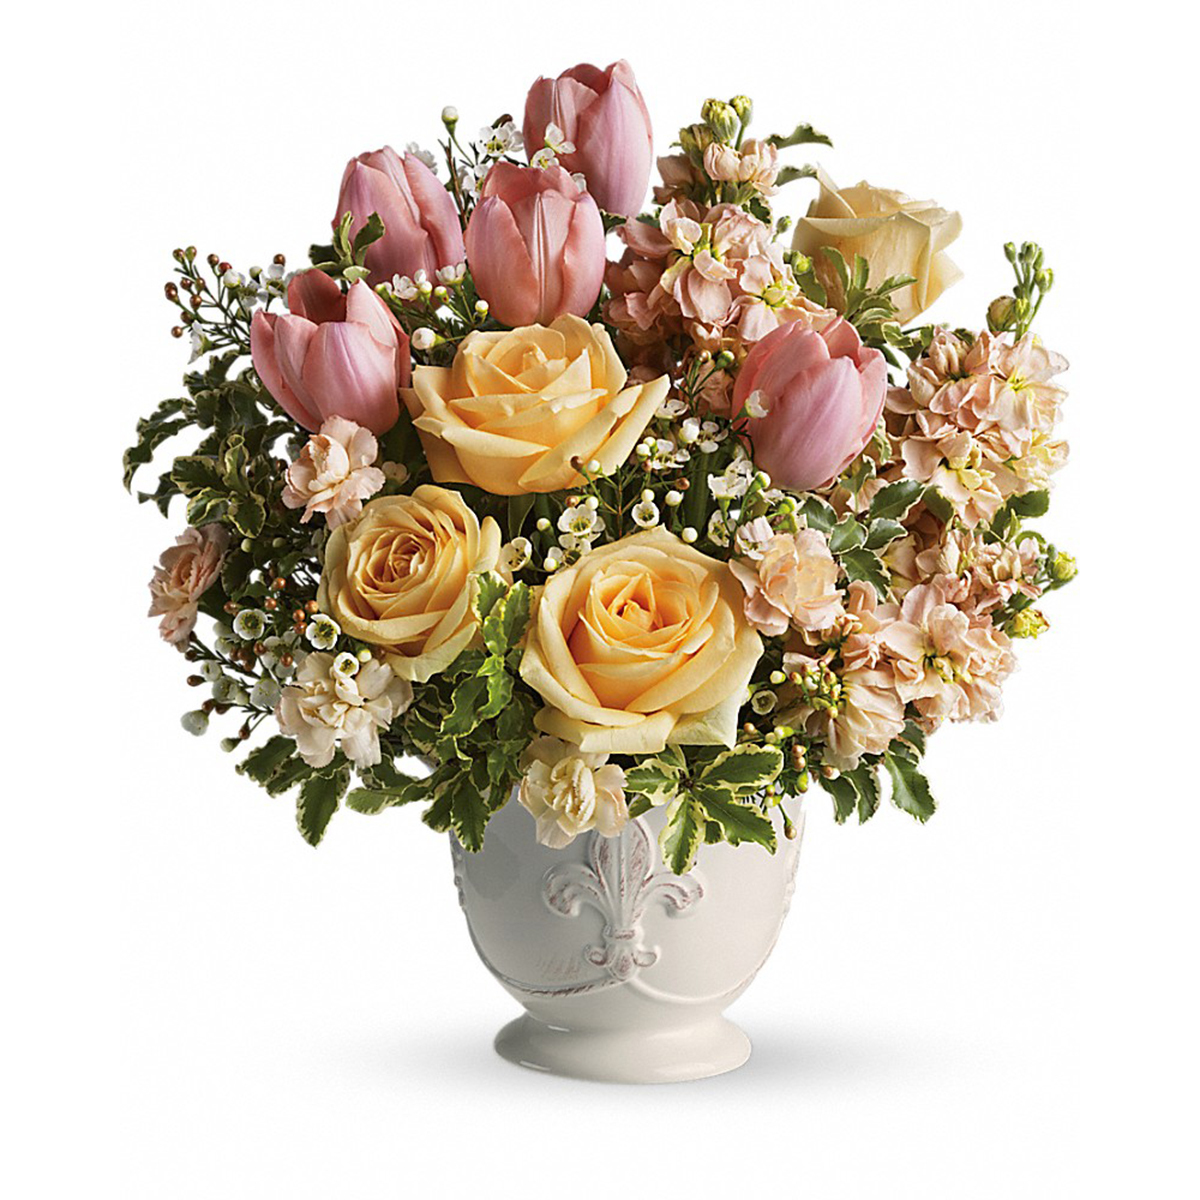 Bouquet of roses, carnations, and tulips in a white vase photo